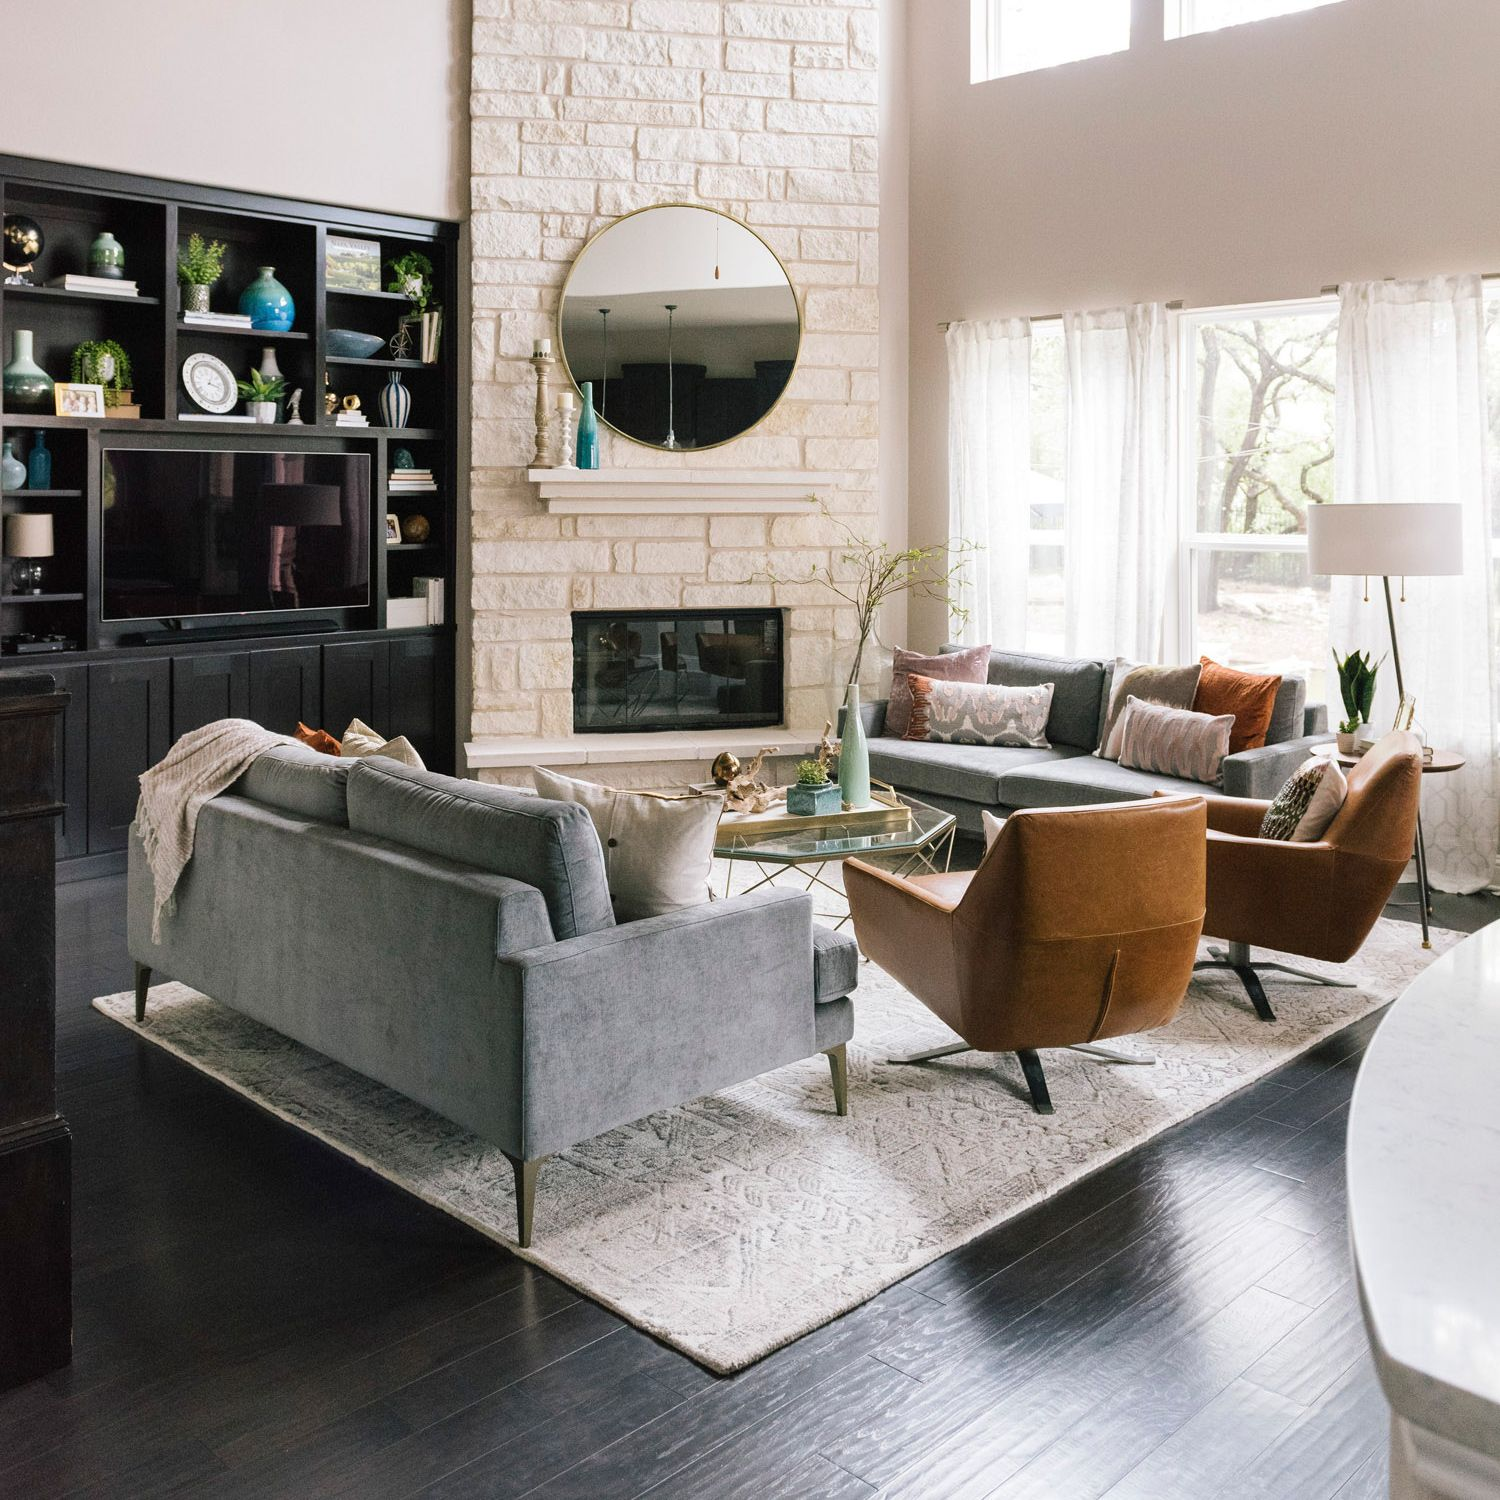 How To Make Two Sofas Work In Your Living Room Front Main Living Room Seating West Elm Living Room Sofa Living Room Leather #new #lots #furniture #living #room #sets